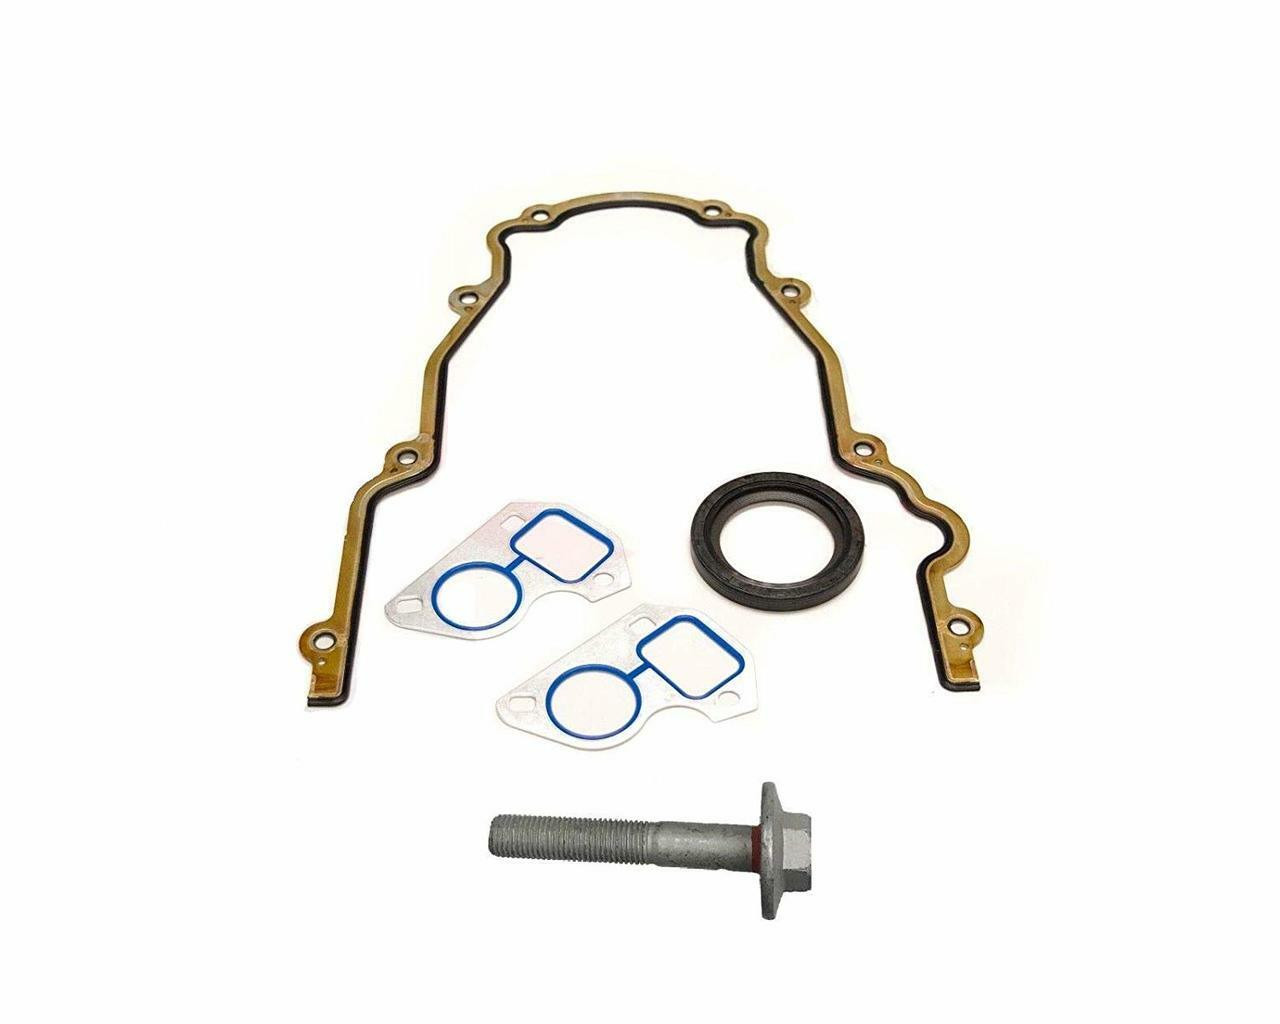 Texas Speed TSP Stage 1 Low Lift Truck Cam 3 Bolt Cam 4.8 5.3 6.0. Kit includes Cam, Springs, Pushrods, Seals and Gasket Kit